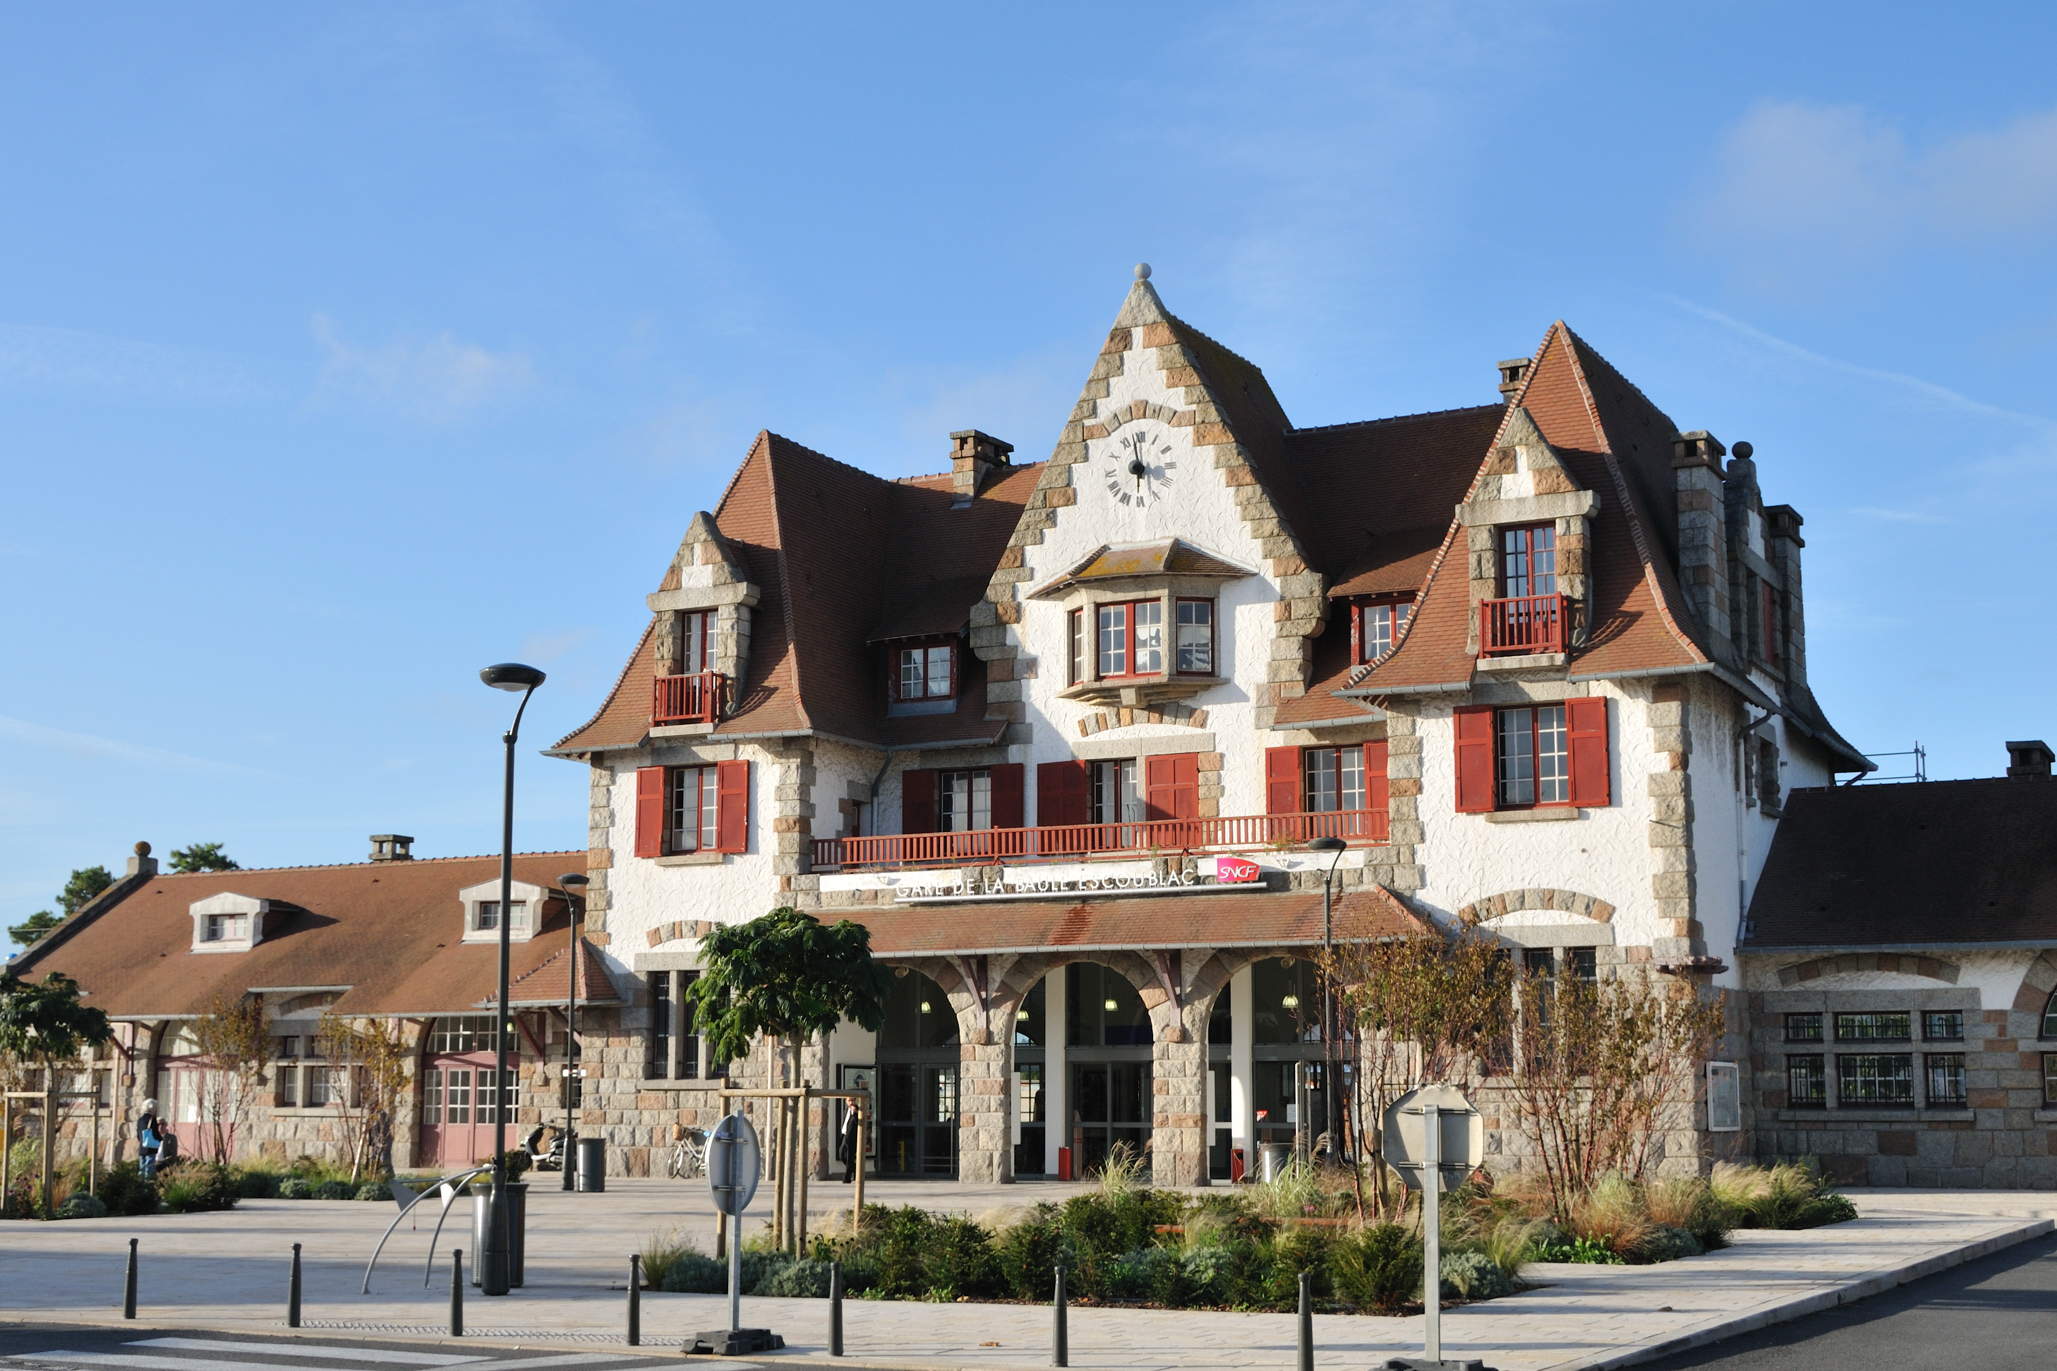 http://upload.wikimedia.org/wikipedia/commons/2/29/La_Baule-Escoublac_gare_1.jpg